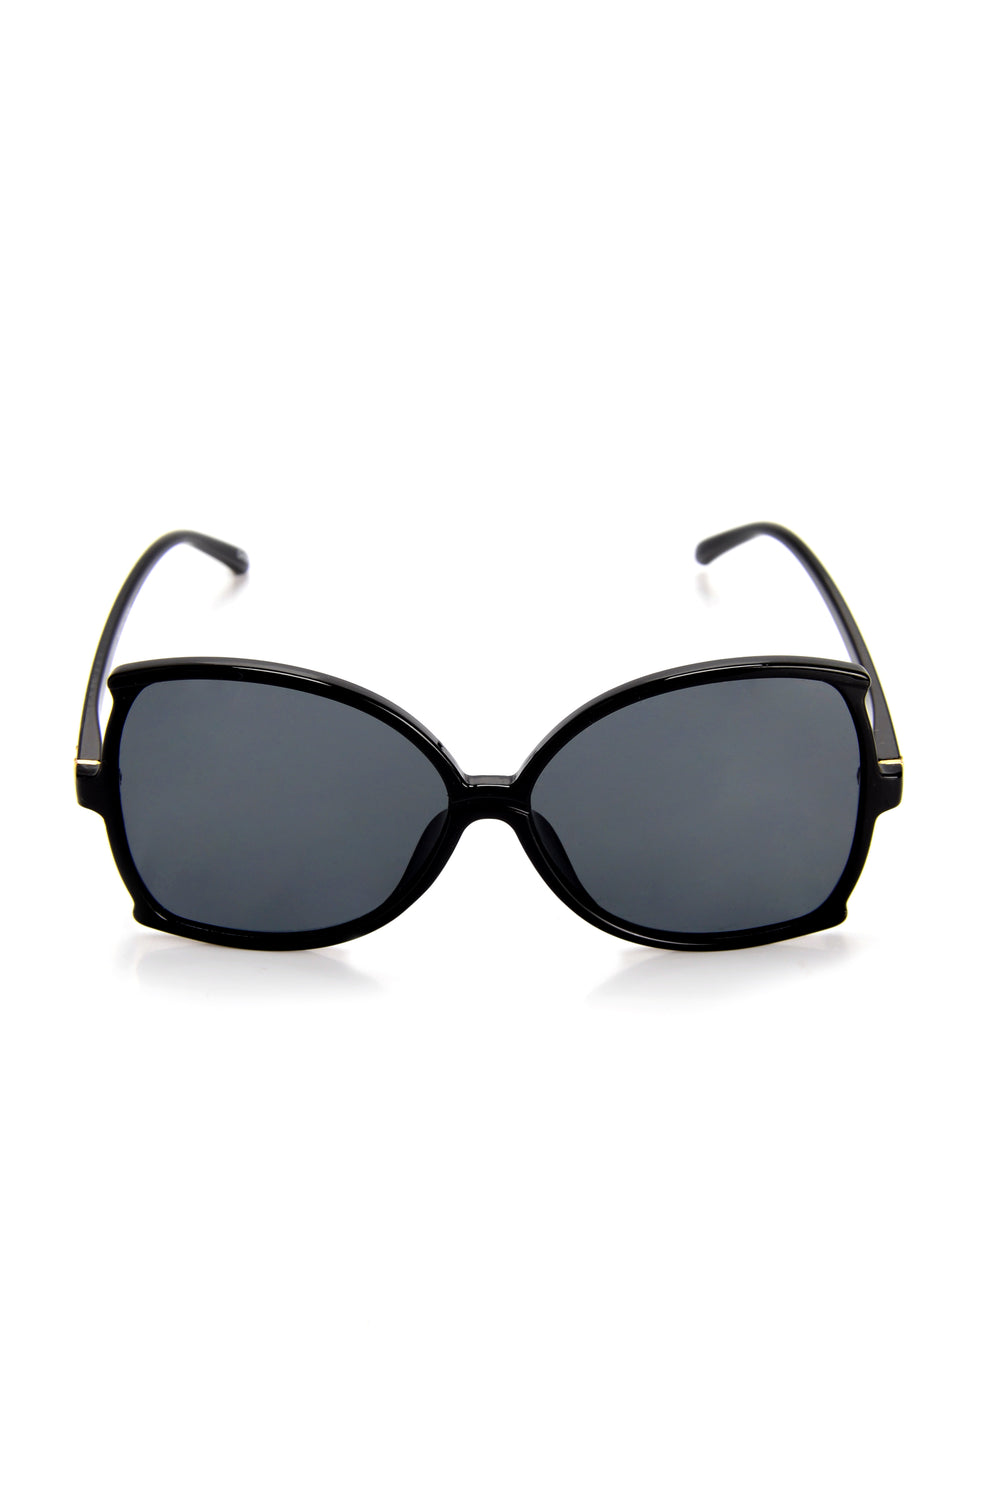 Hold The Sass Sunglasses - Black